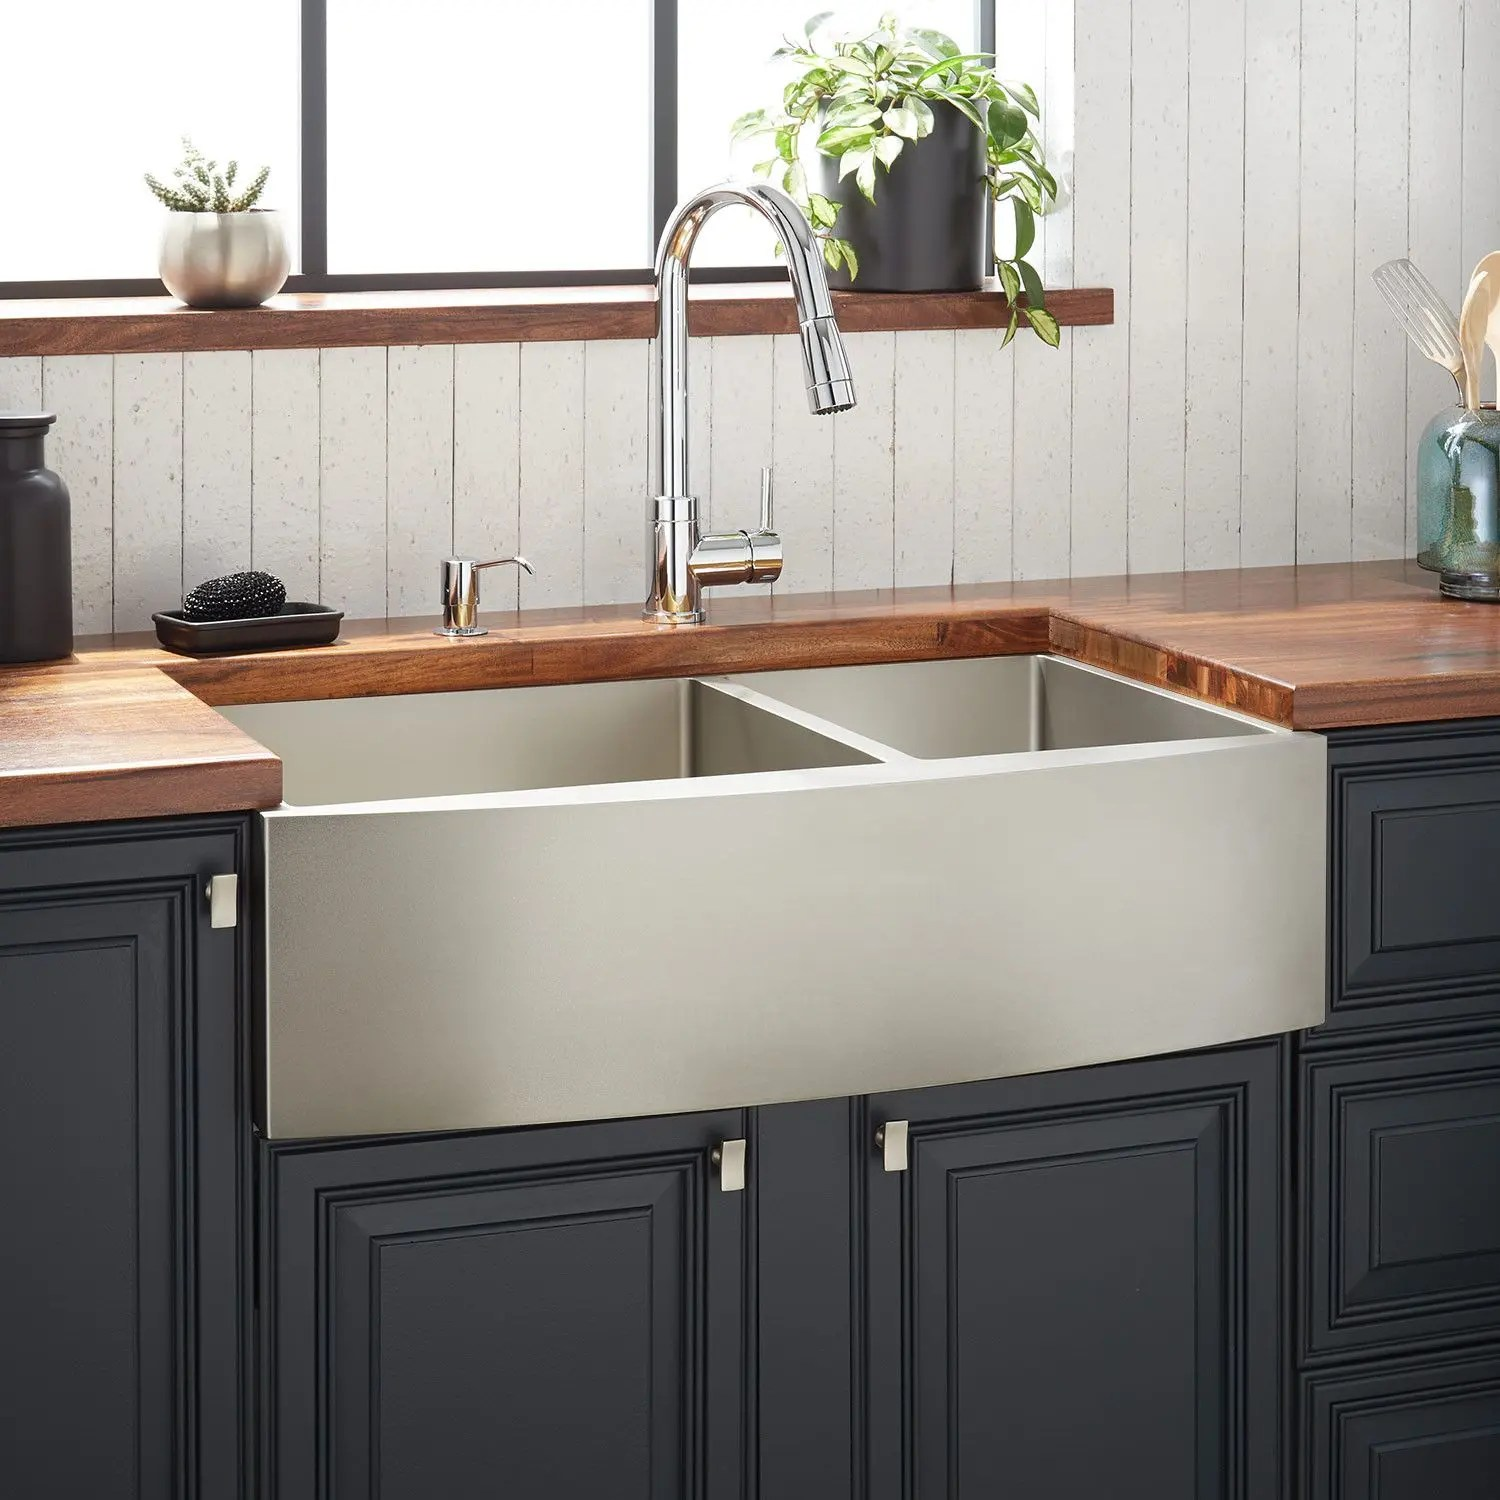 36 atlas 60 40 offset double bowl stainless steel farmhouse sink curved apron pewter